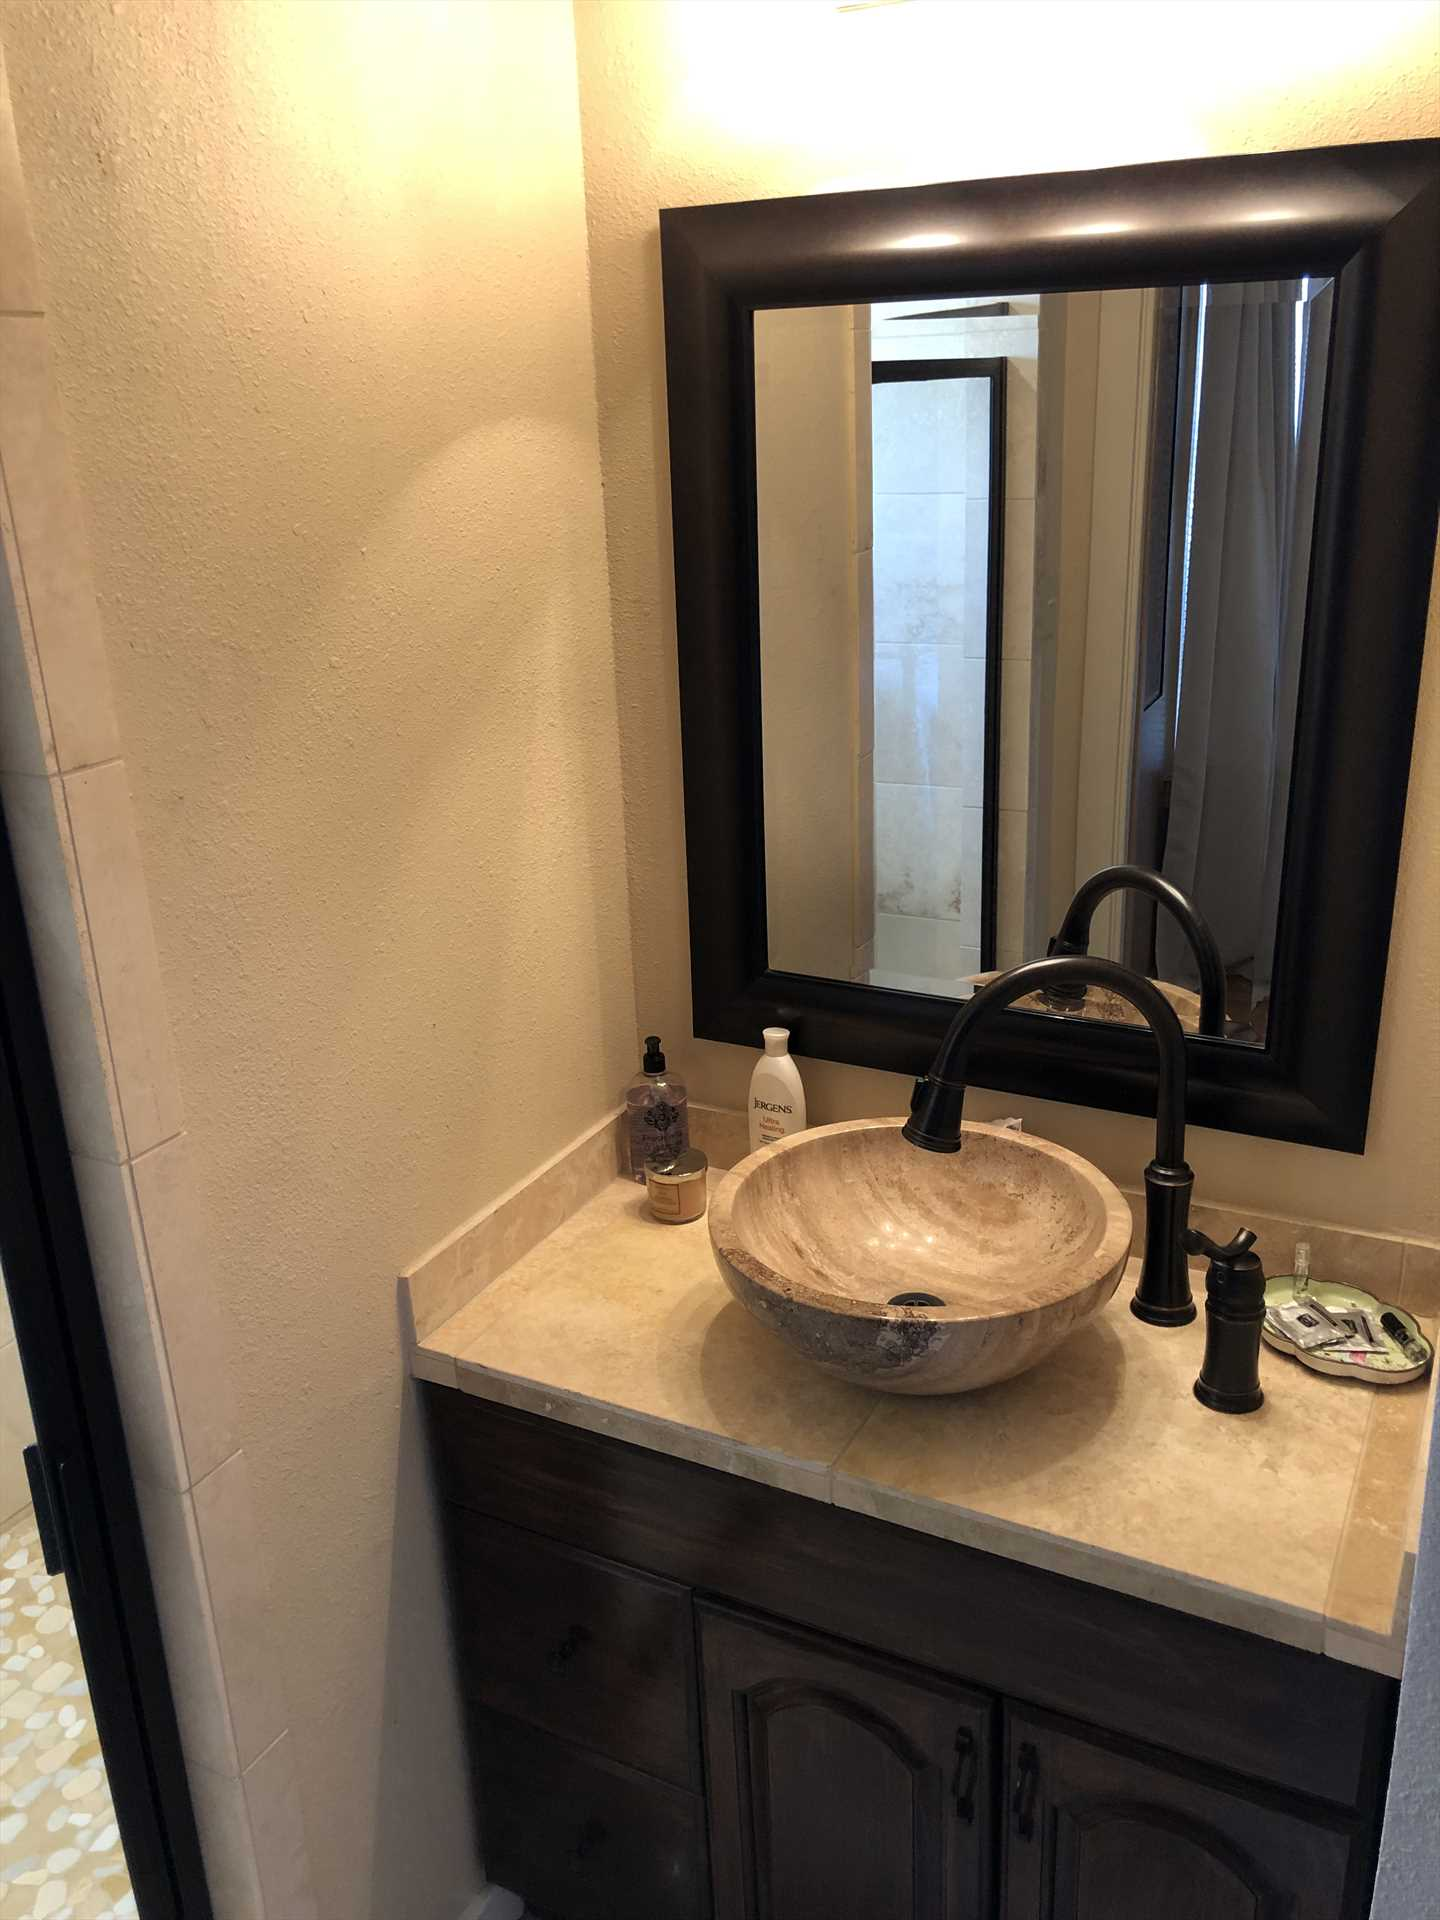 The boldly-framed vanity mirror over the bowl-style sink add style touches to the master bath, there's nothing ordinary about any room here!